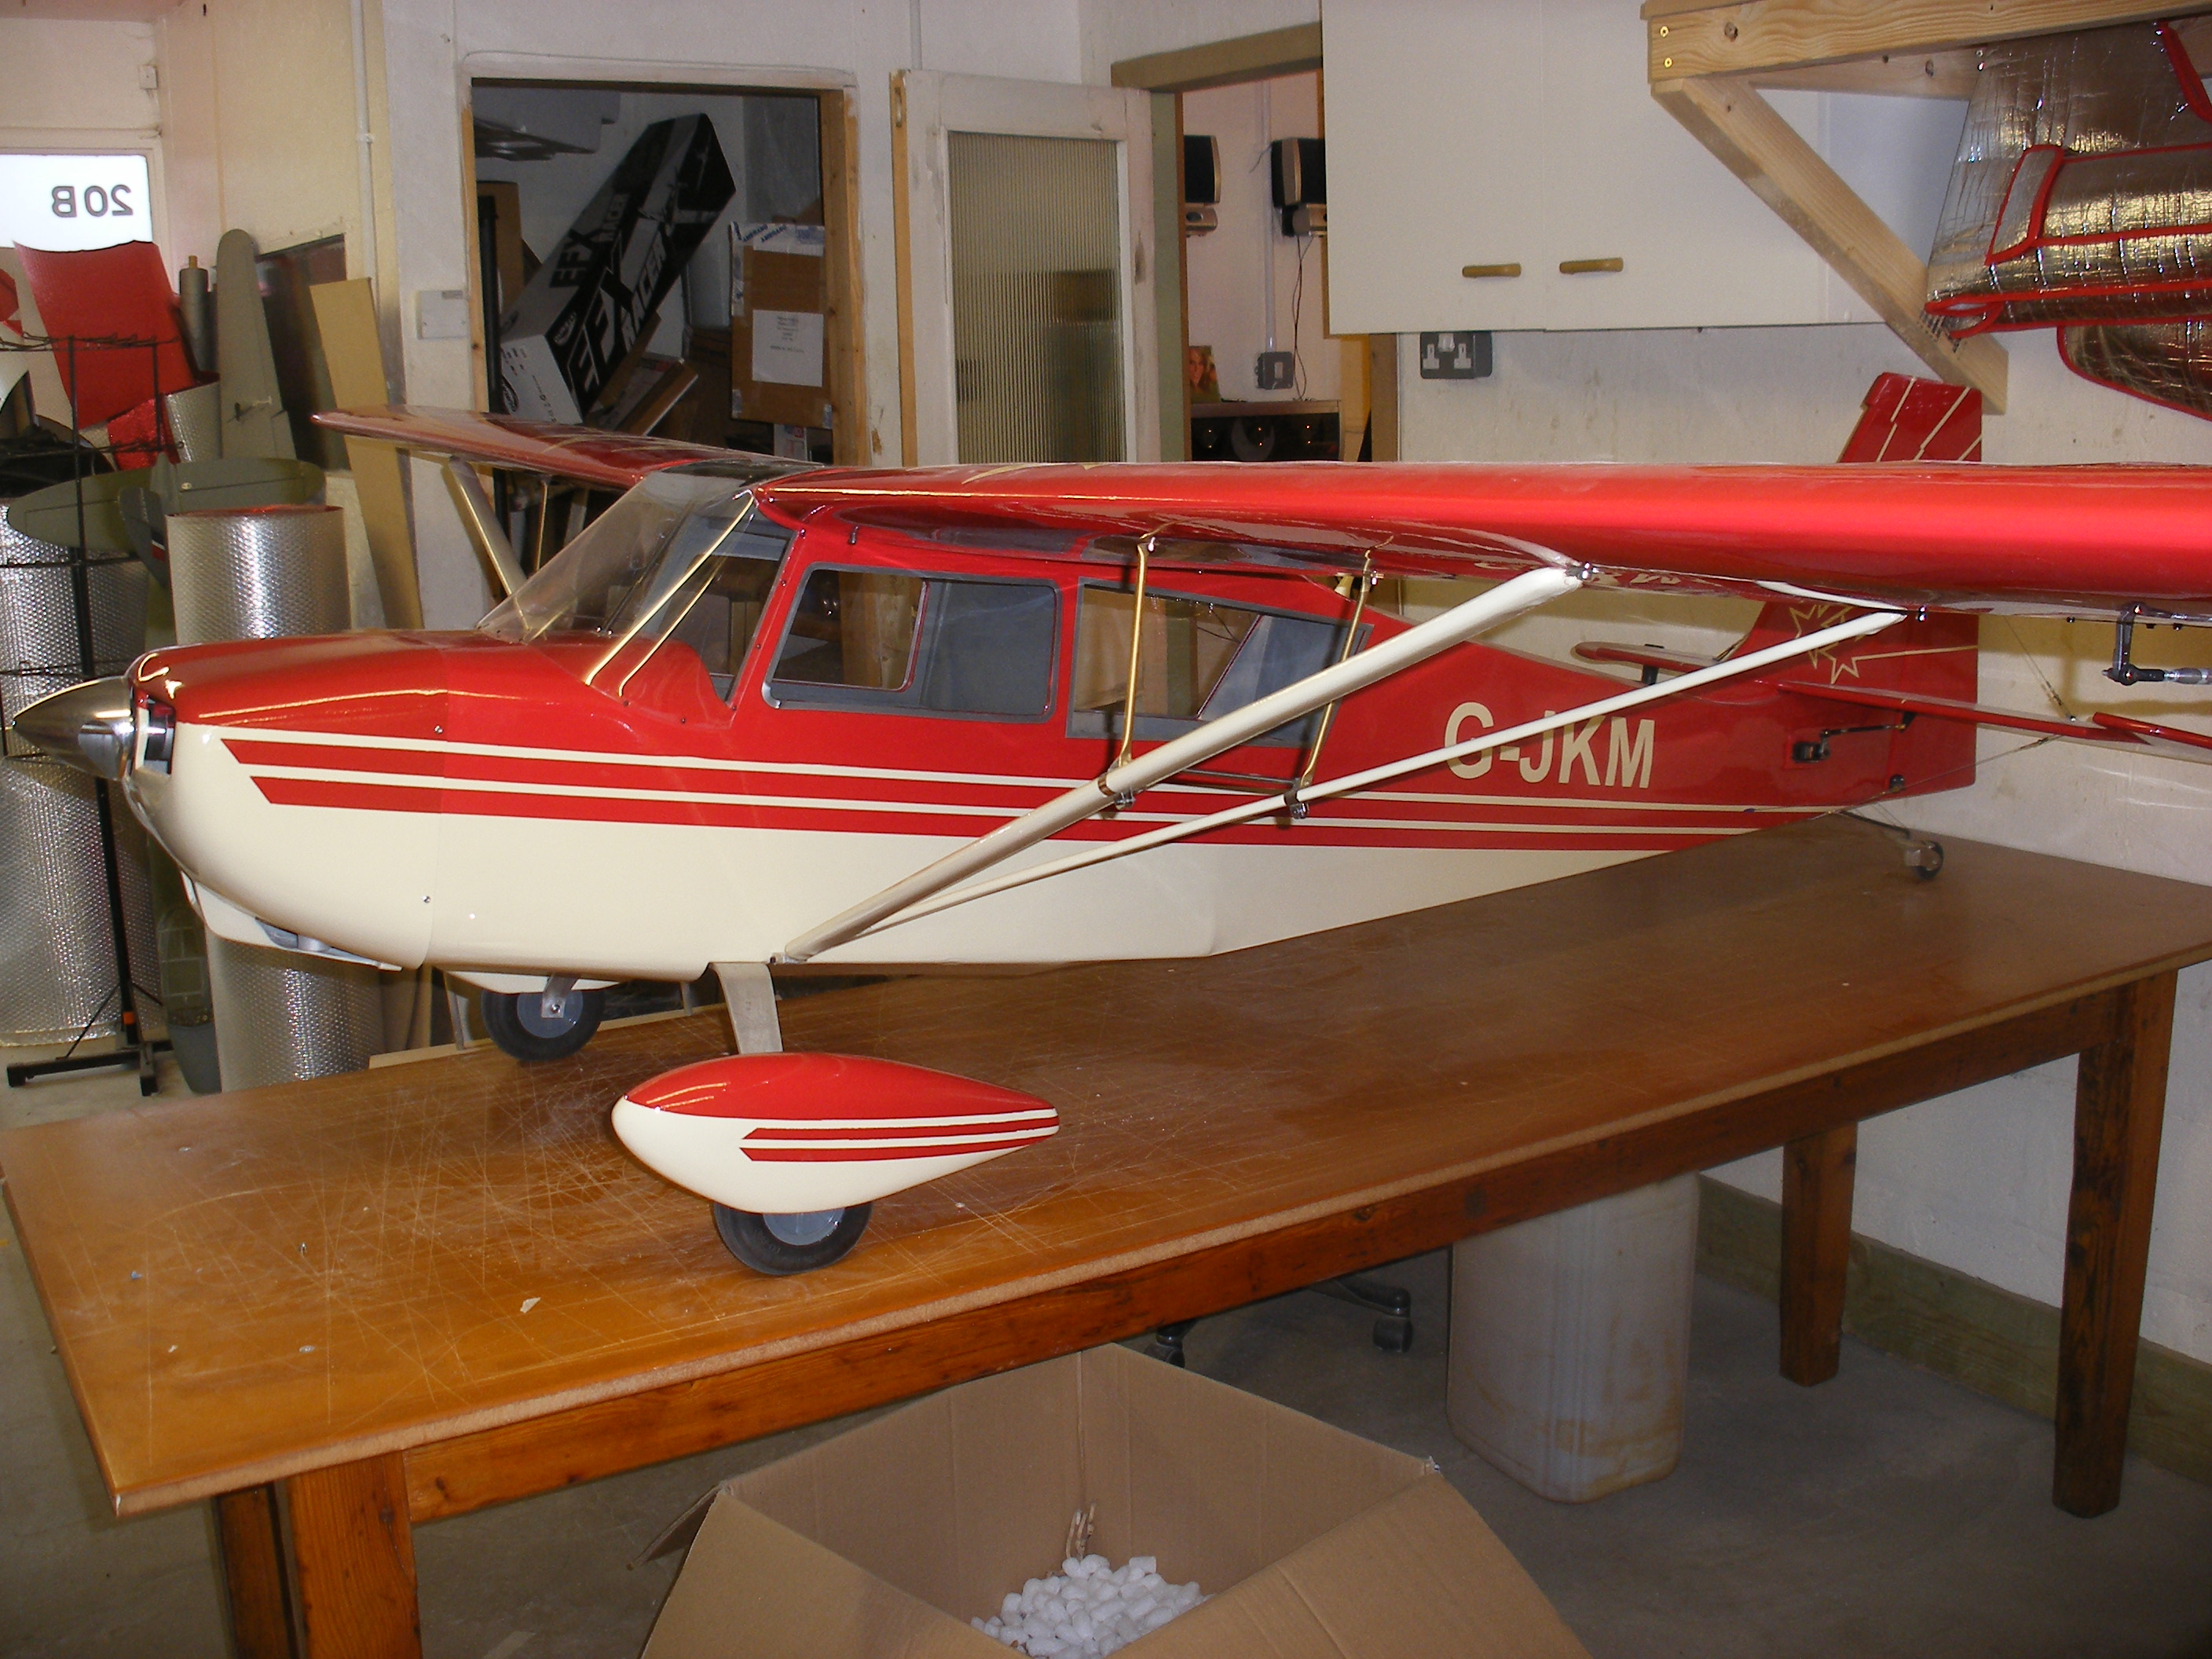 Super Decathlon Side View